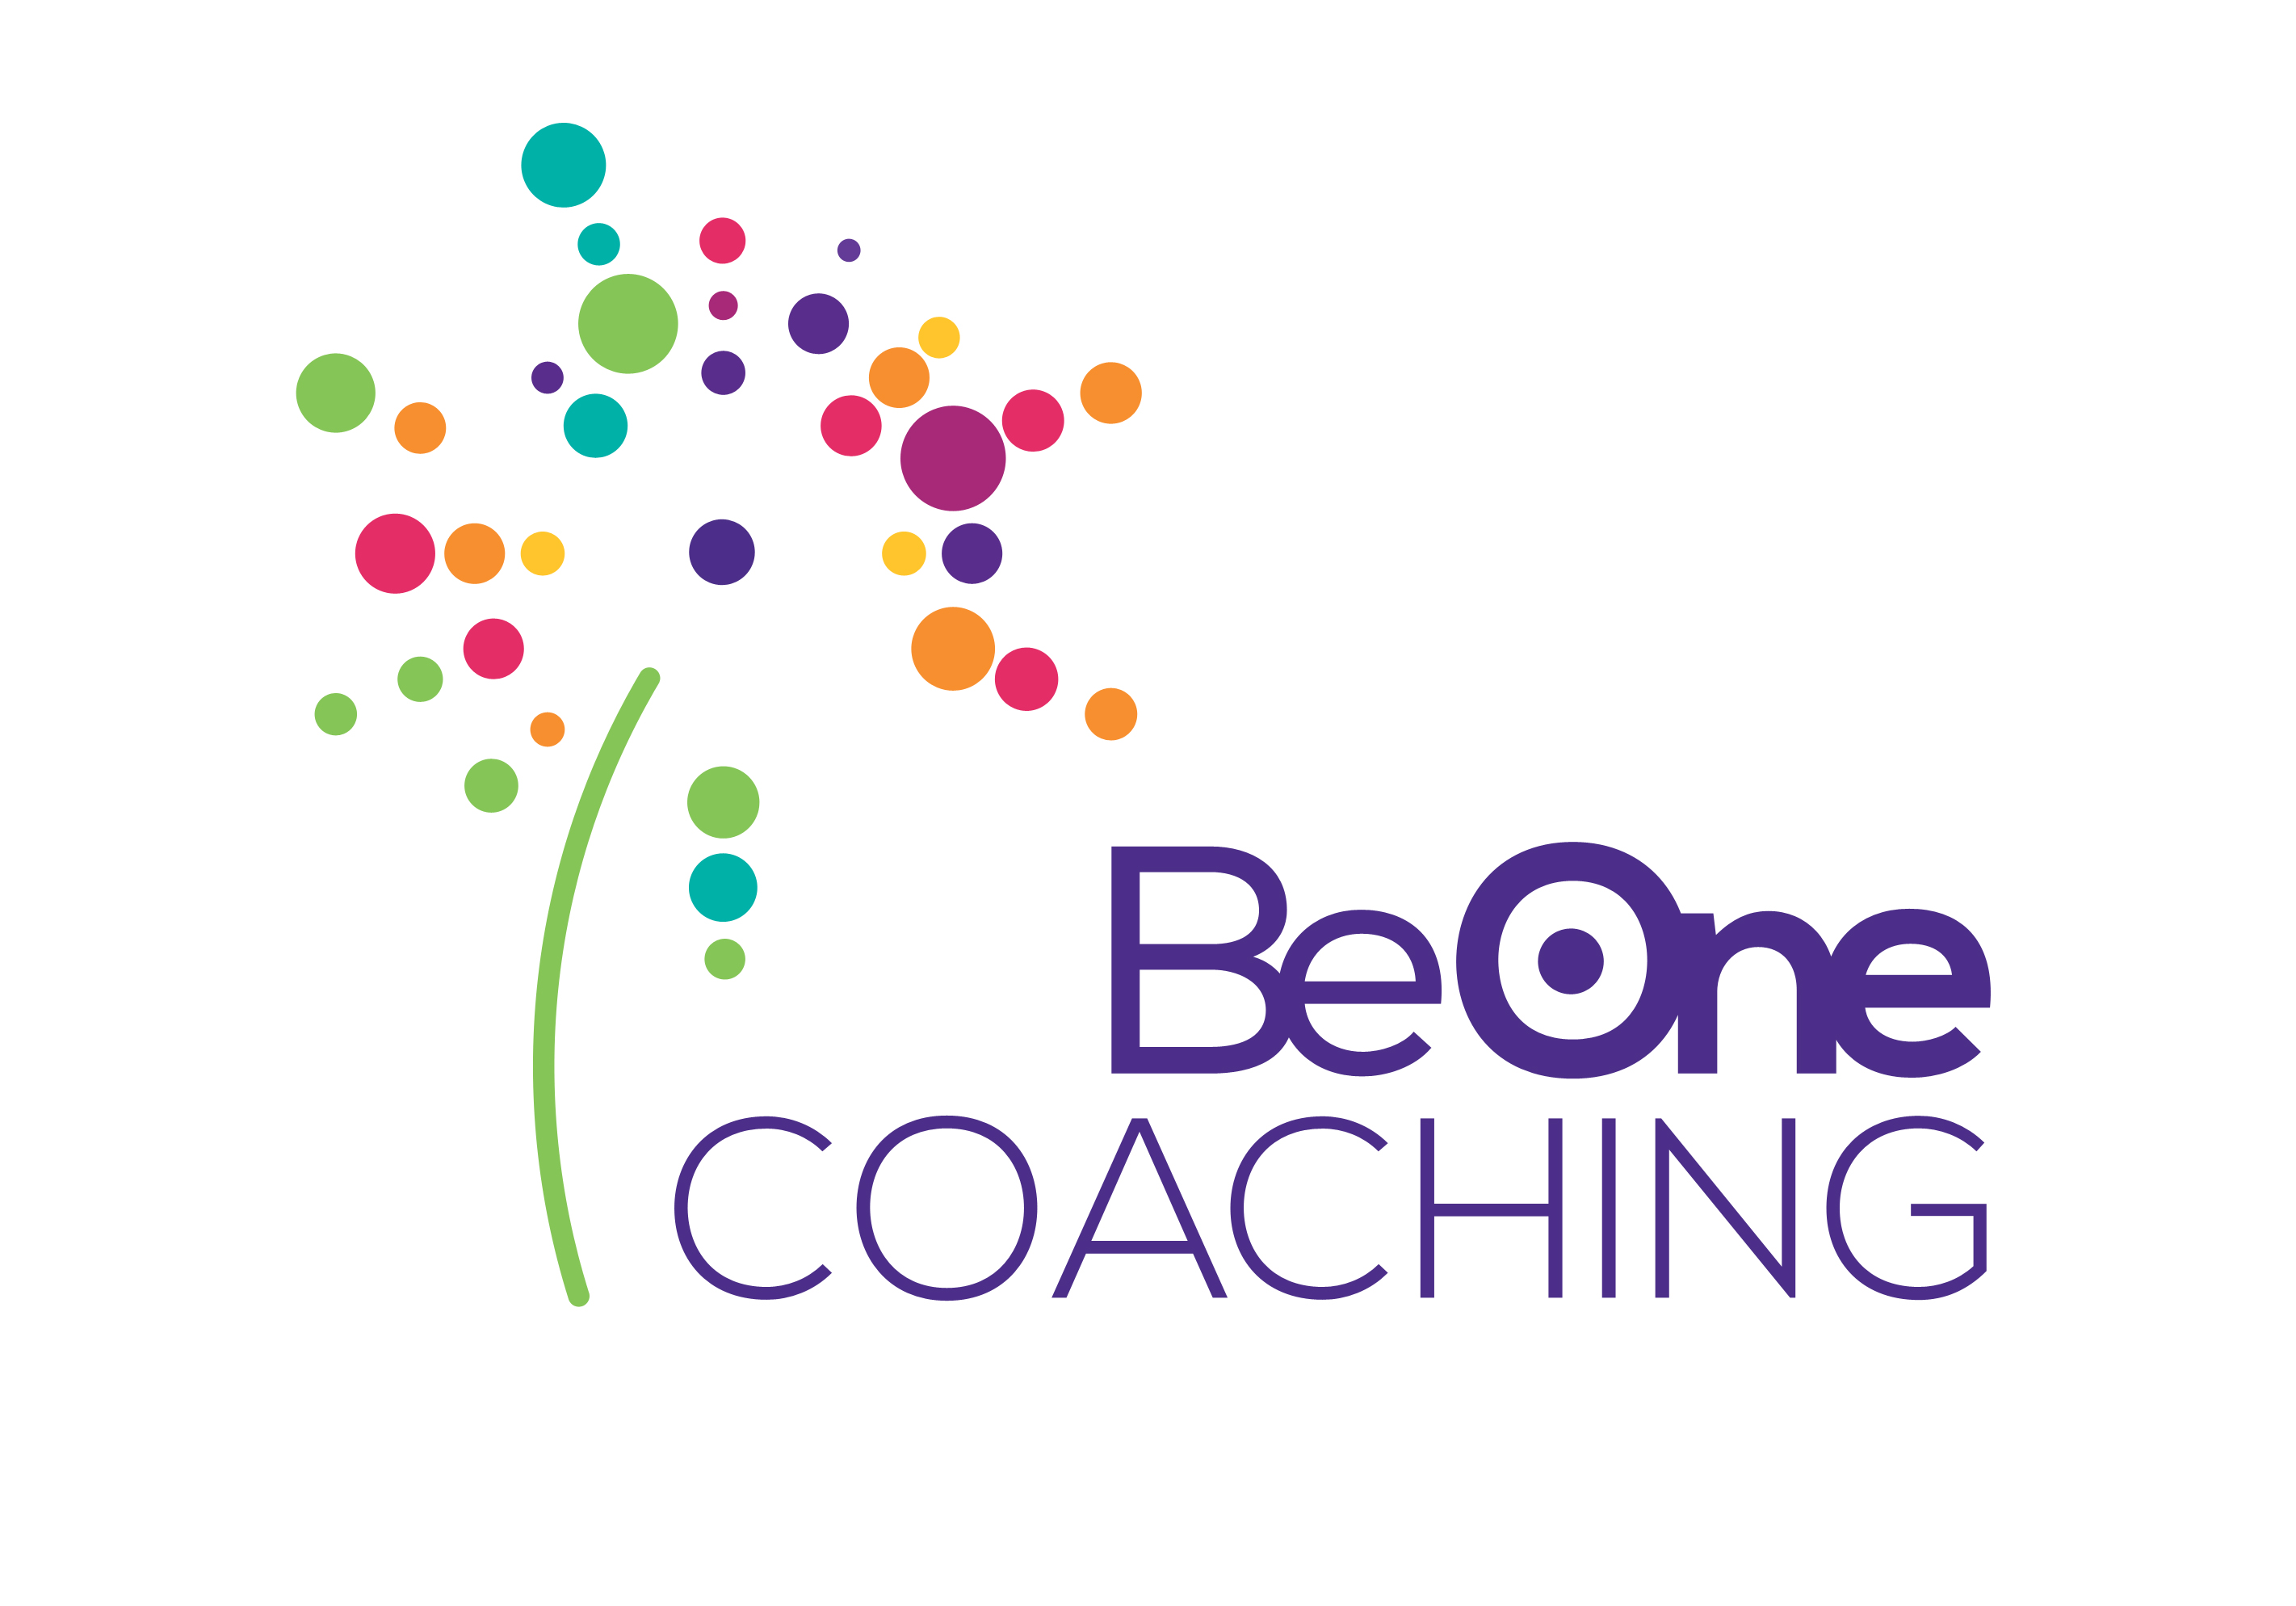 BEONE COACHING